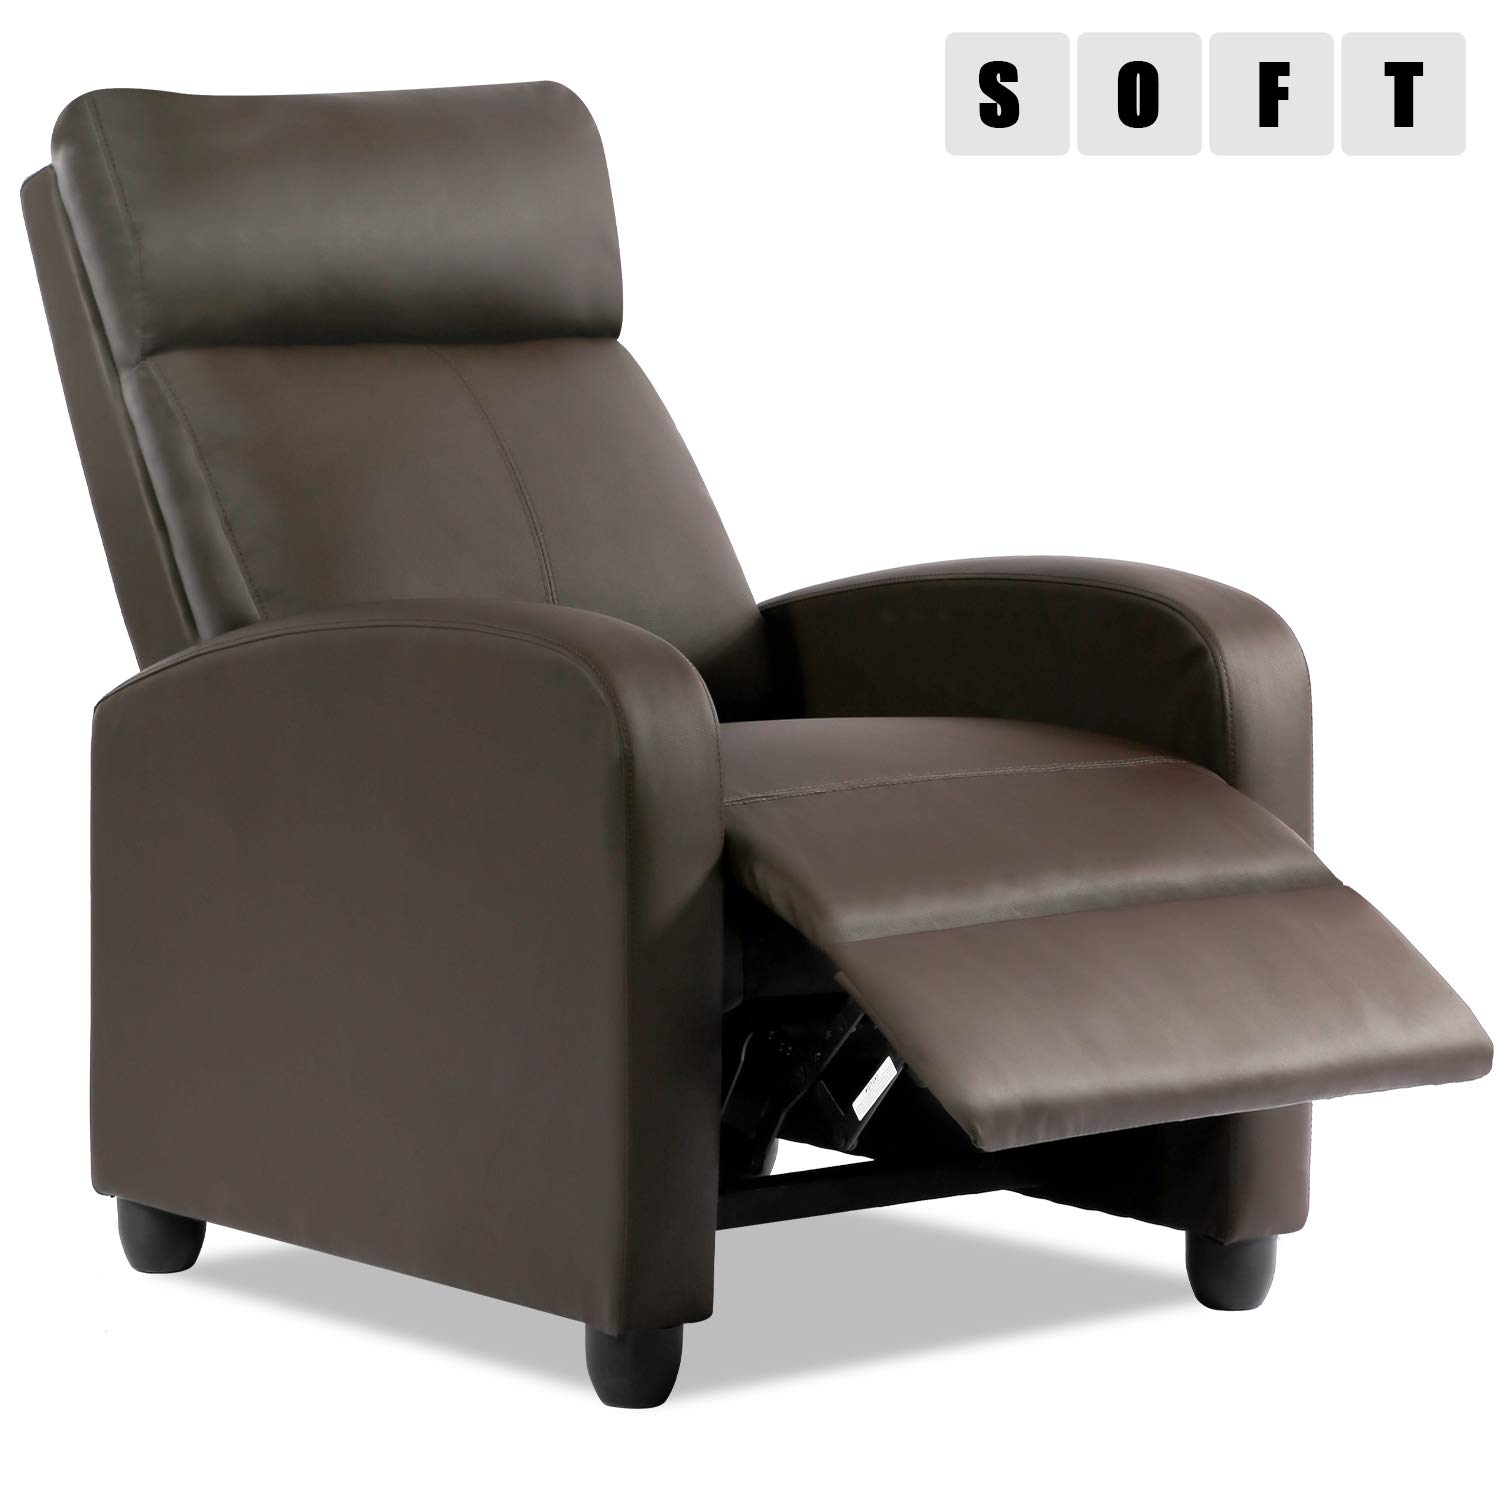 Recliner Chair For Living Room Recliner Sofa Wingback Chair Reading Chair Arm Chair Single Sofa Accent Chair Home Theater Seating Modern Reclining Chair Easy Lounge Brown Amazon In Home Kitchen